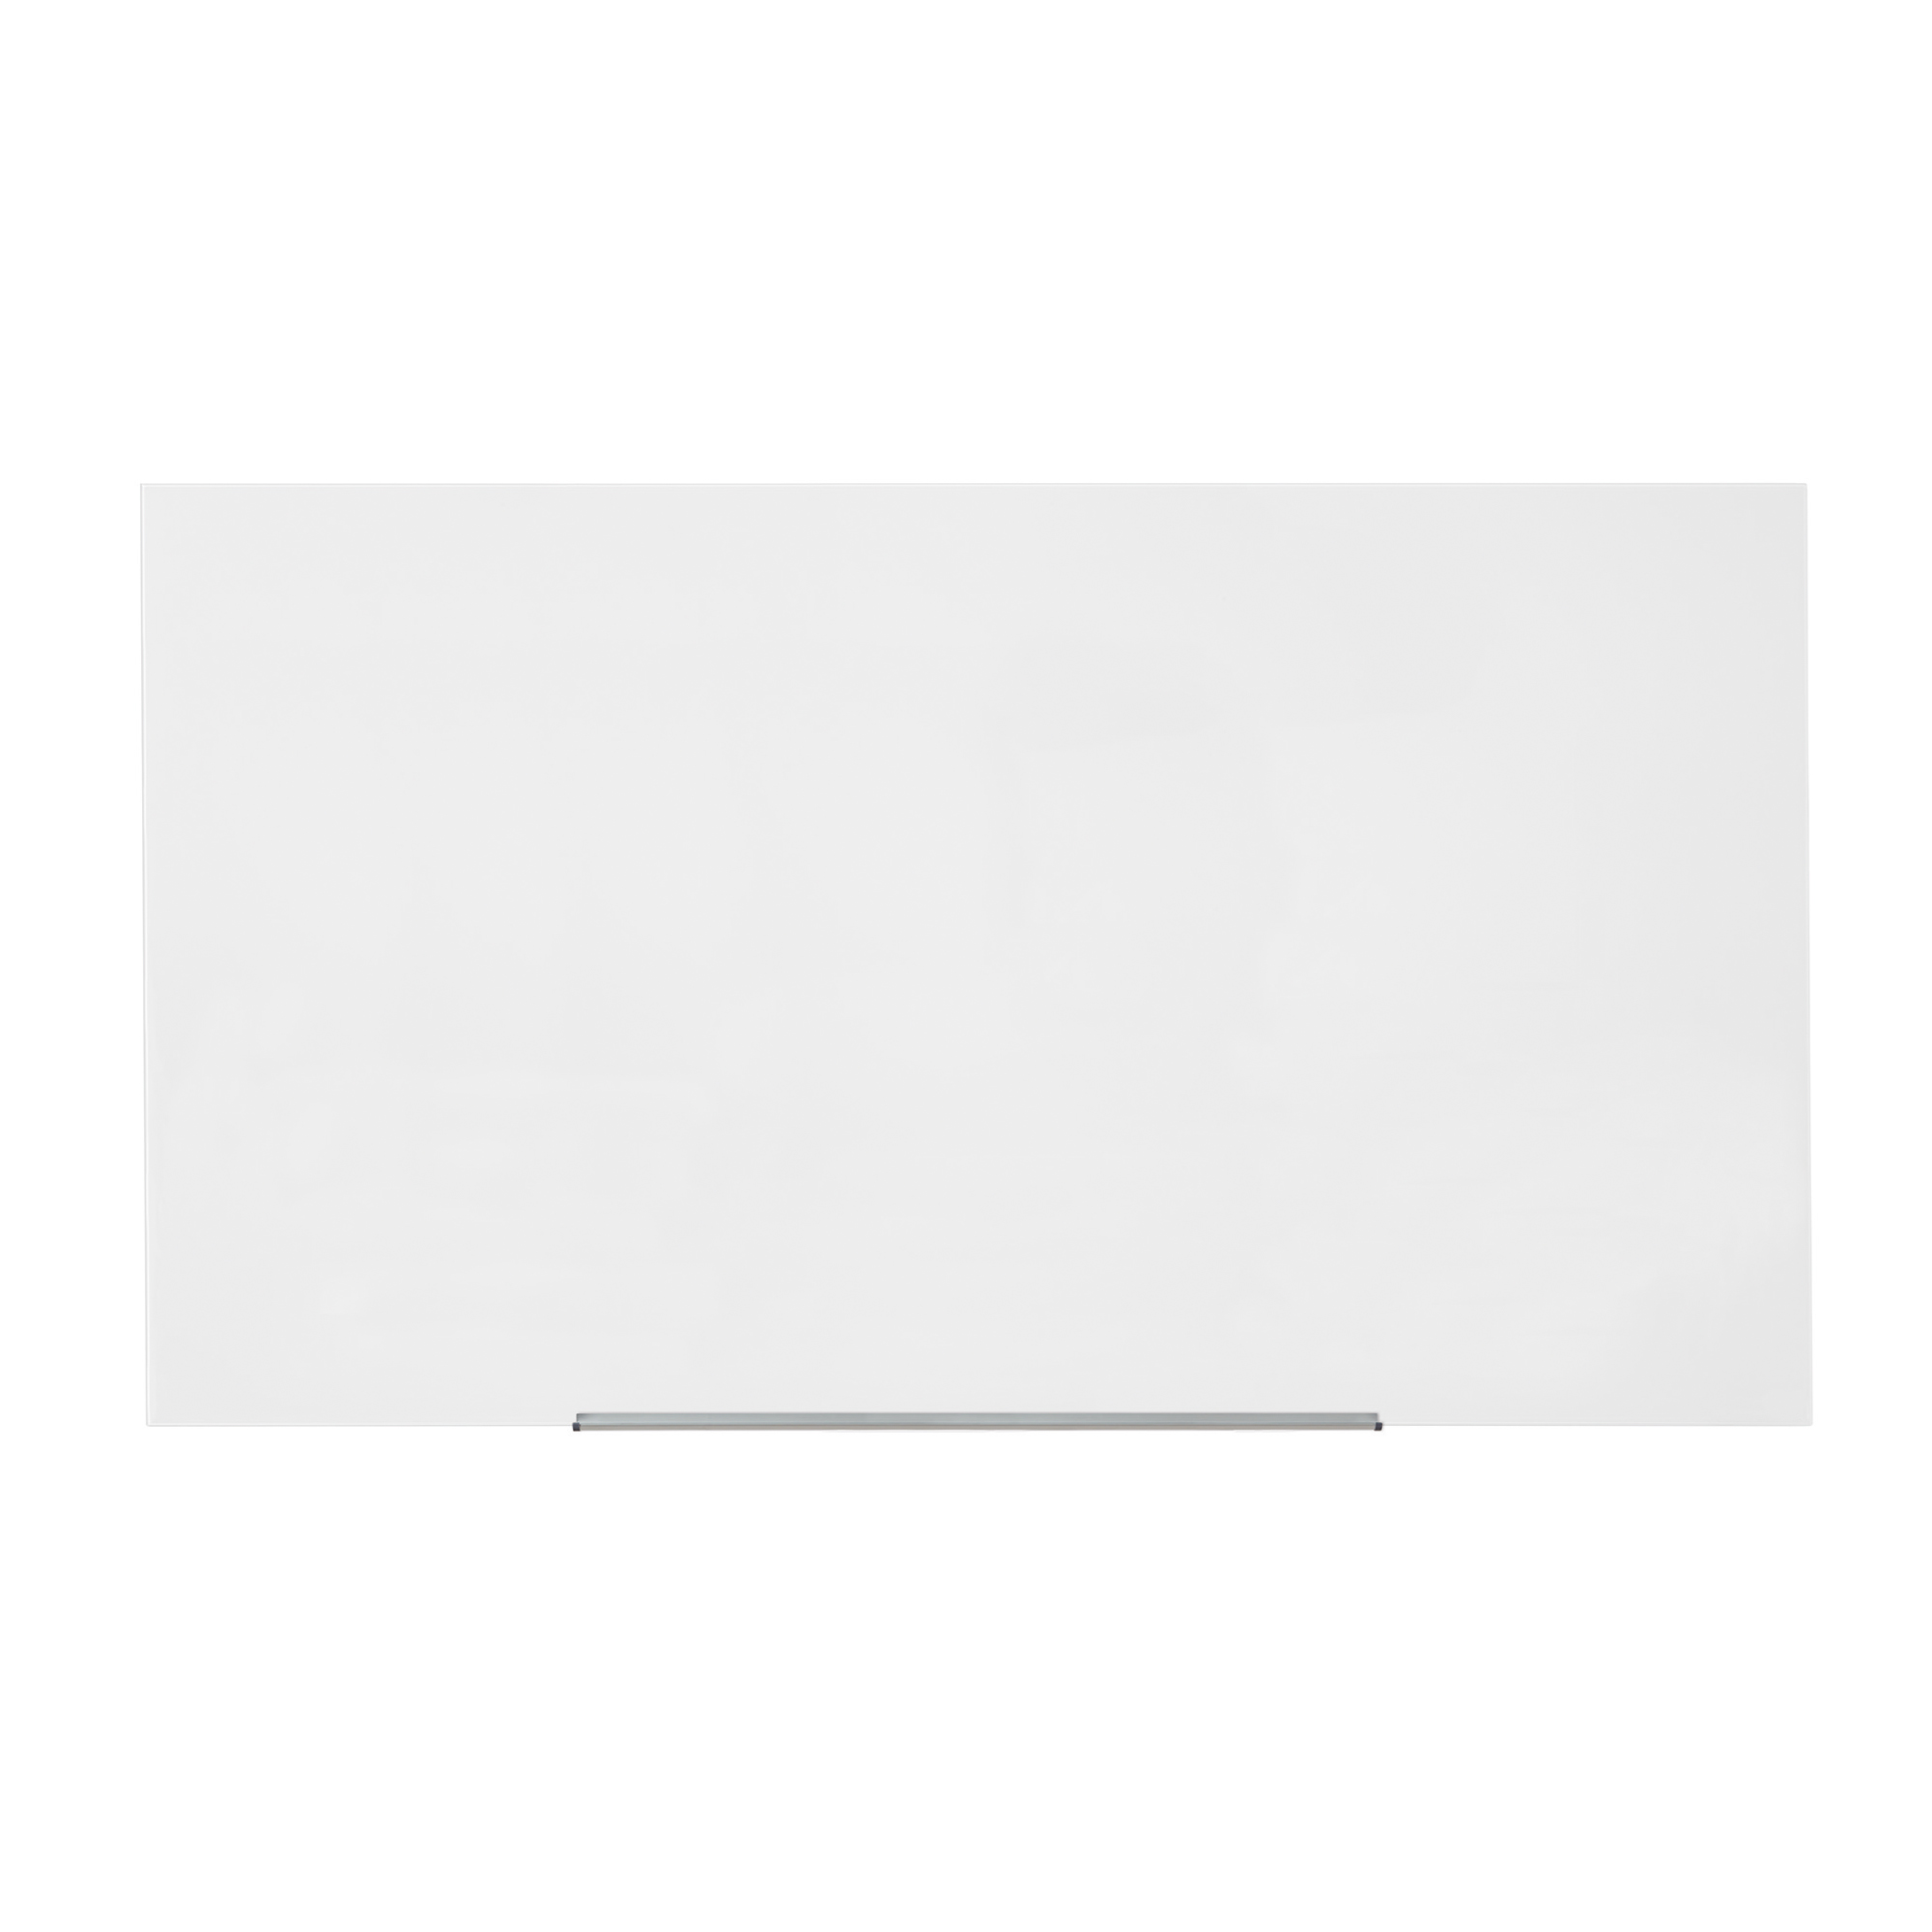 5 Star Office Glass Board Magnetic with Wall Fixings W1883xH1059mm White